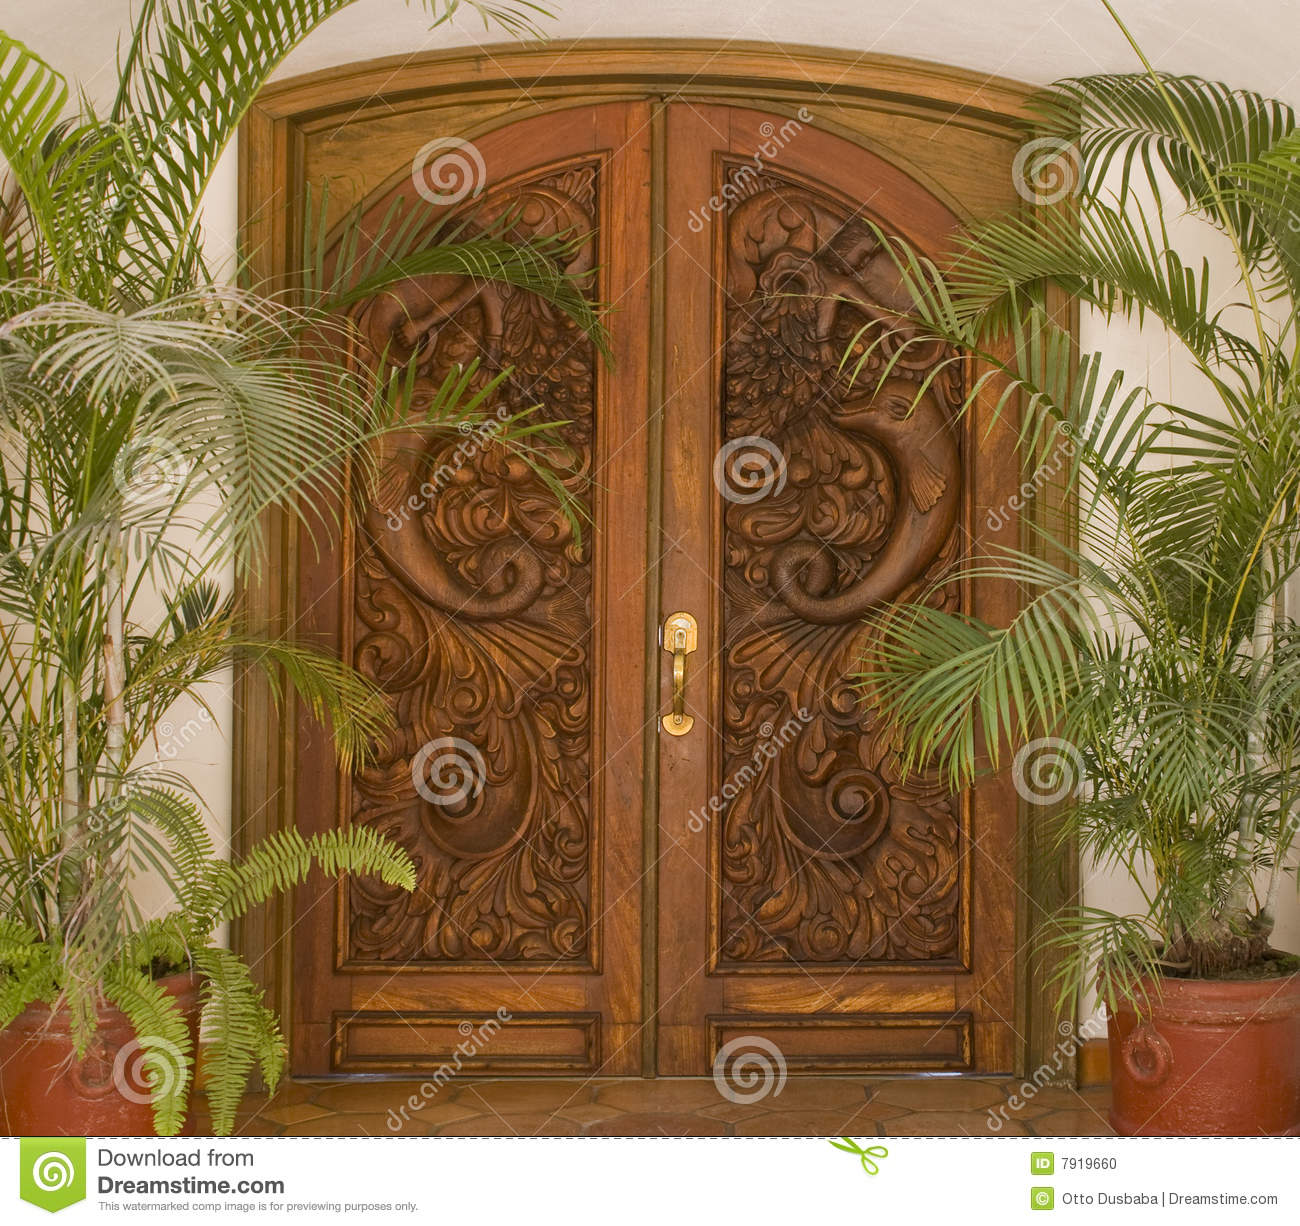 Carved wooden door stock photo image of portal made for Wood carving doors hd images